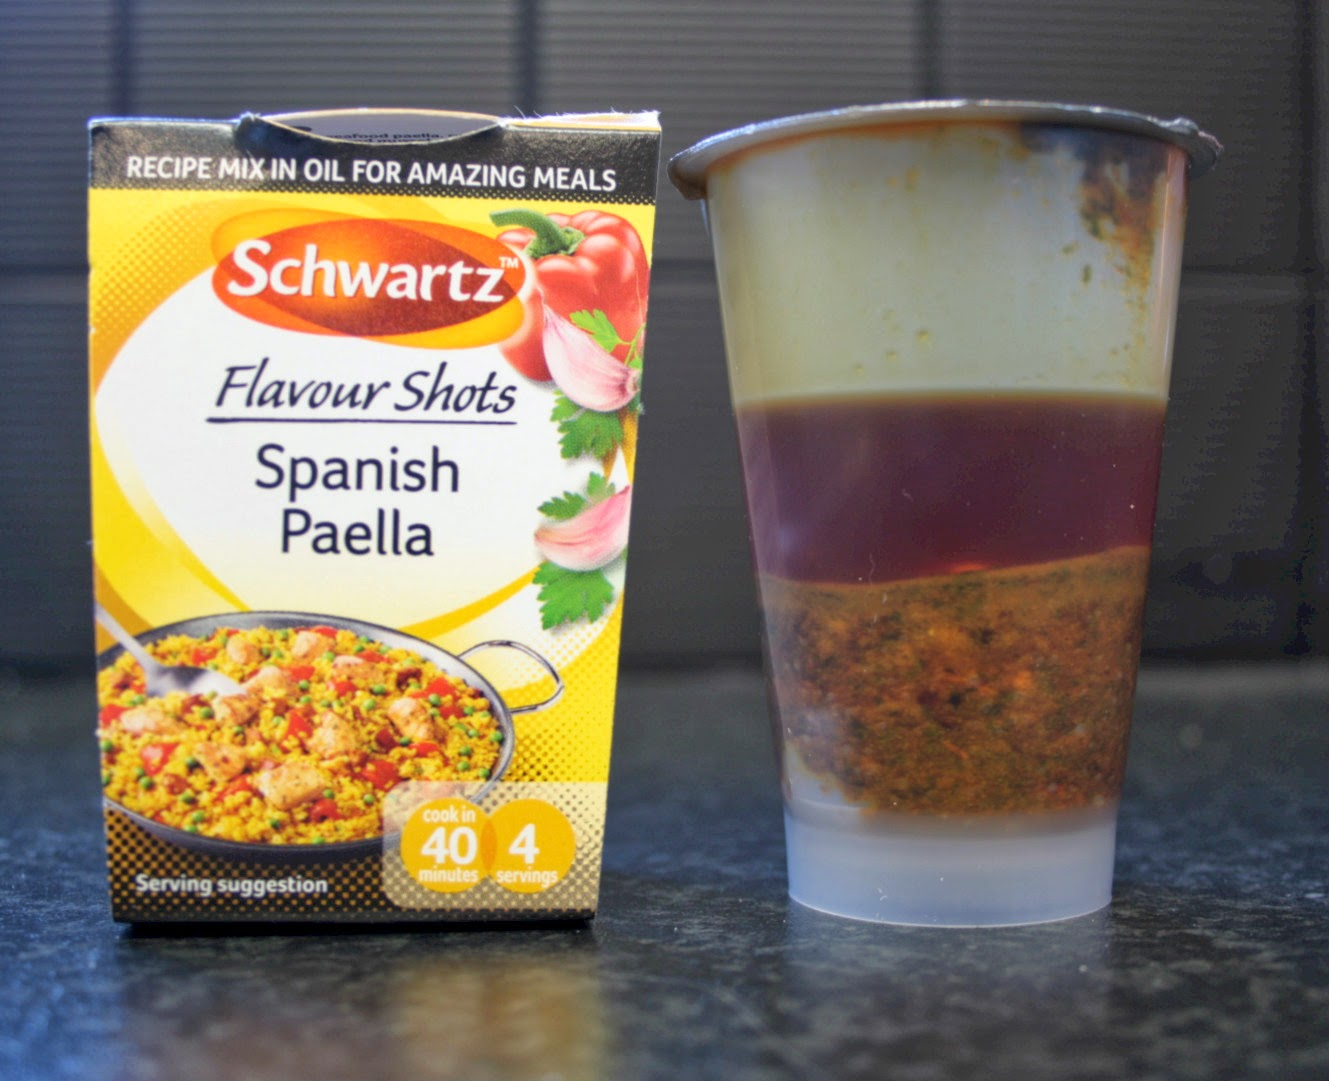 Schwartz Spanish Paella Flavour Shot - help make dinner quick and easy!